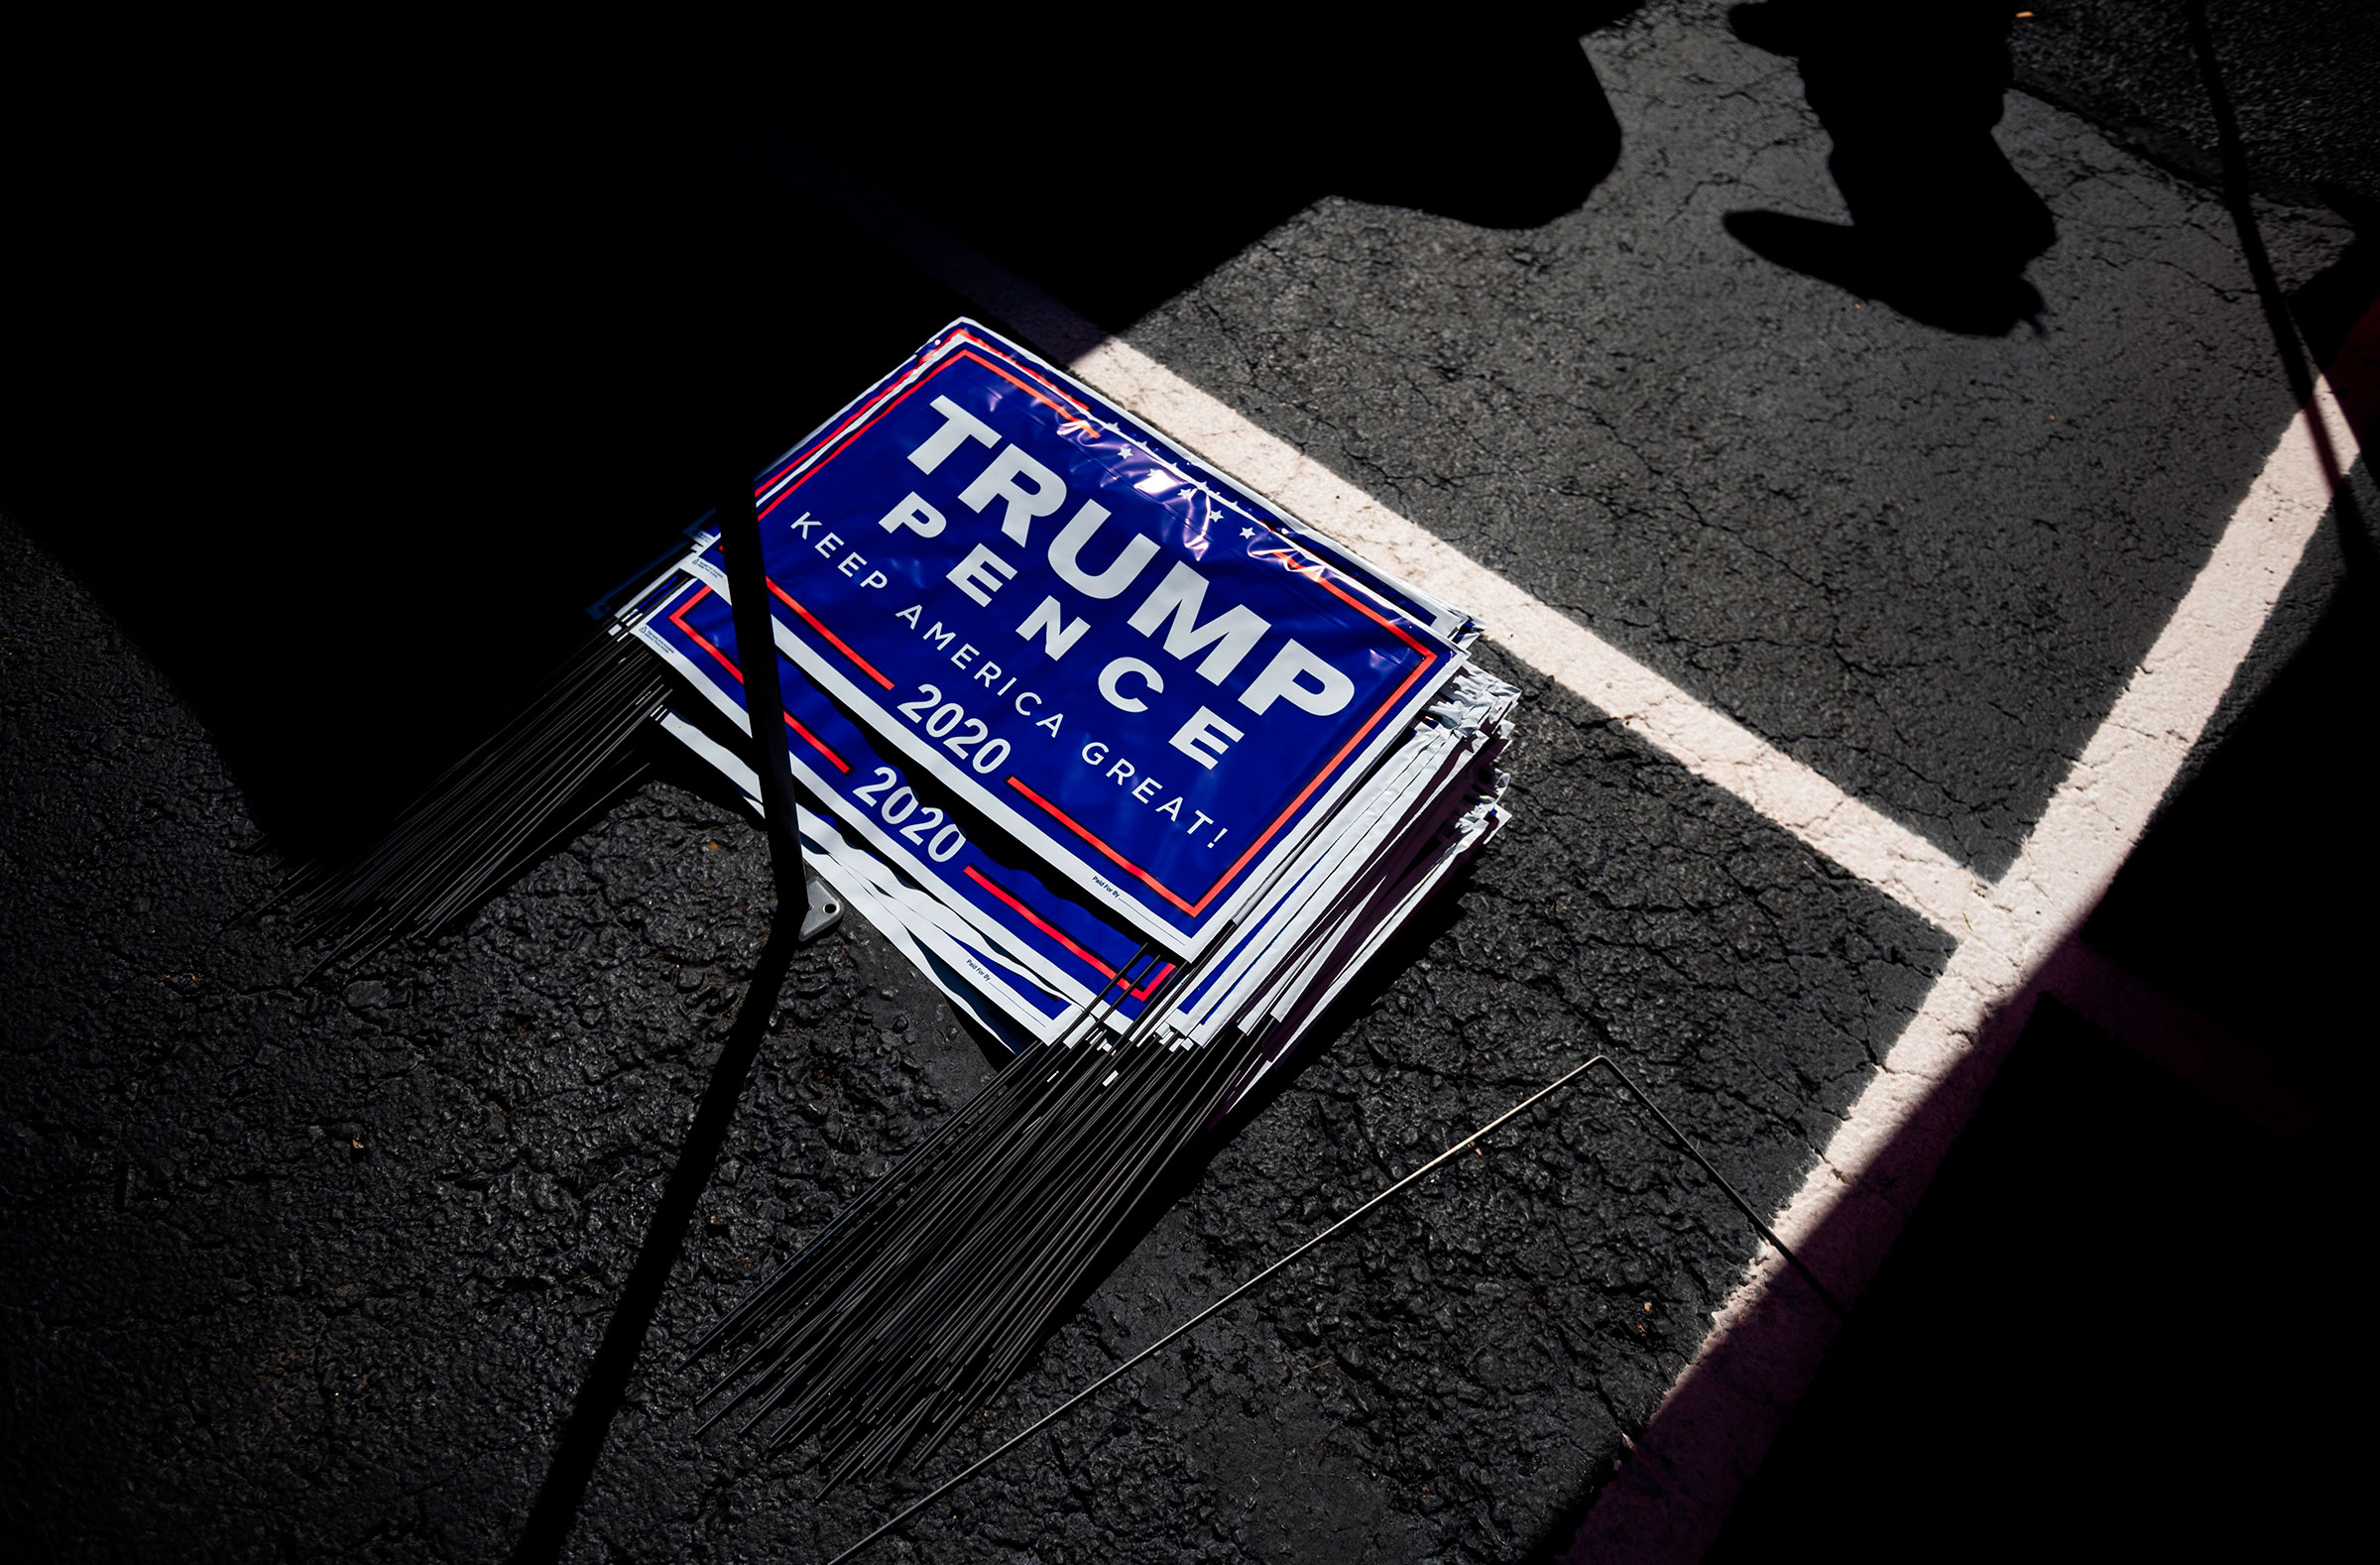 Yard signs for President Donald Trump are seen during a Republican voter registration in Brownsville, Pennsylvania on Sept. 5, 2020.